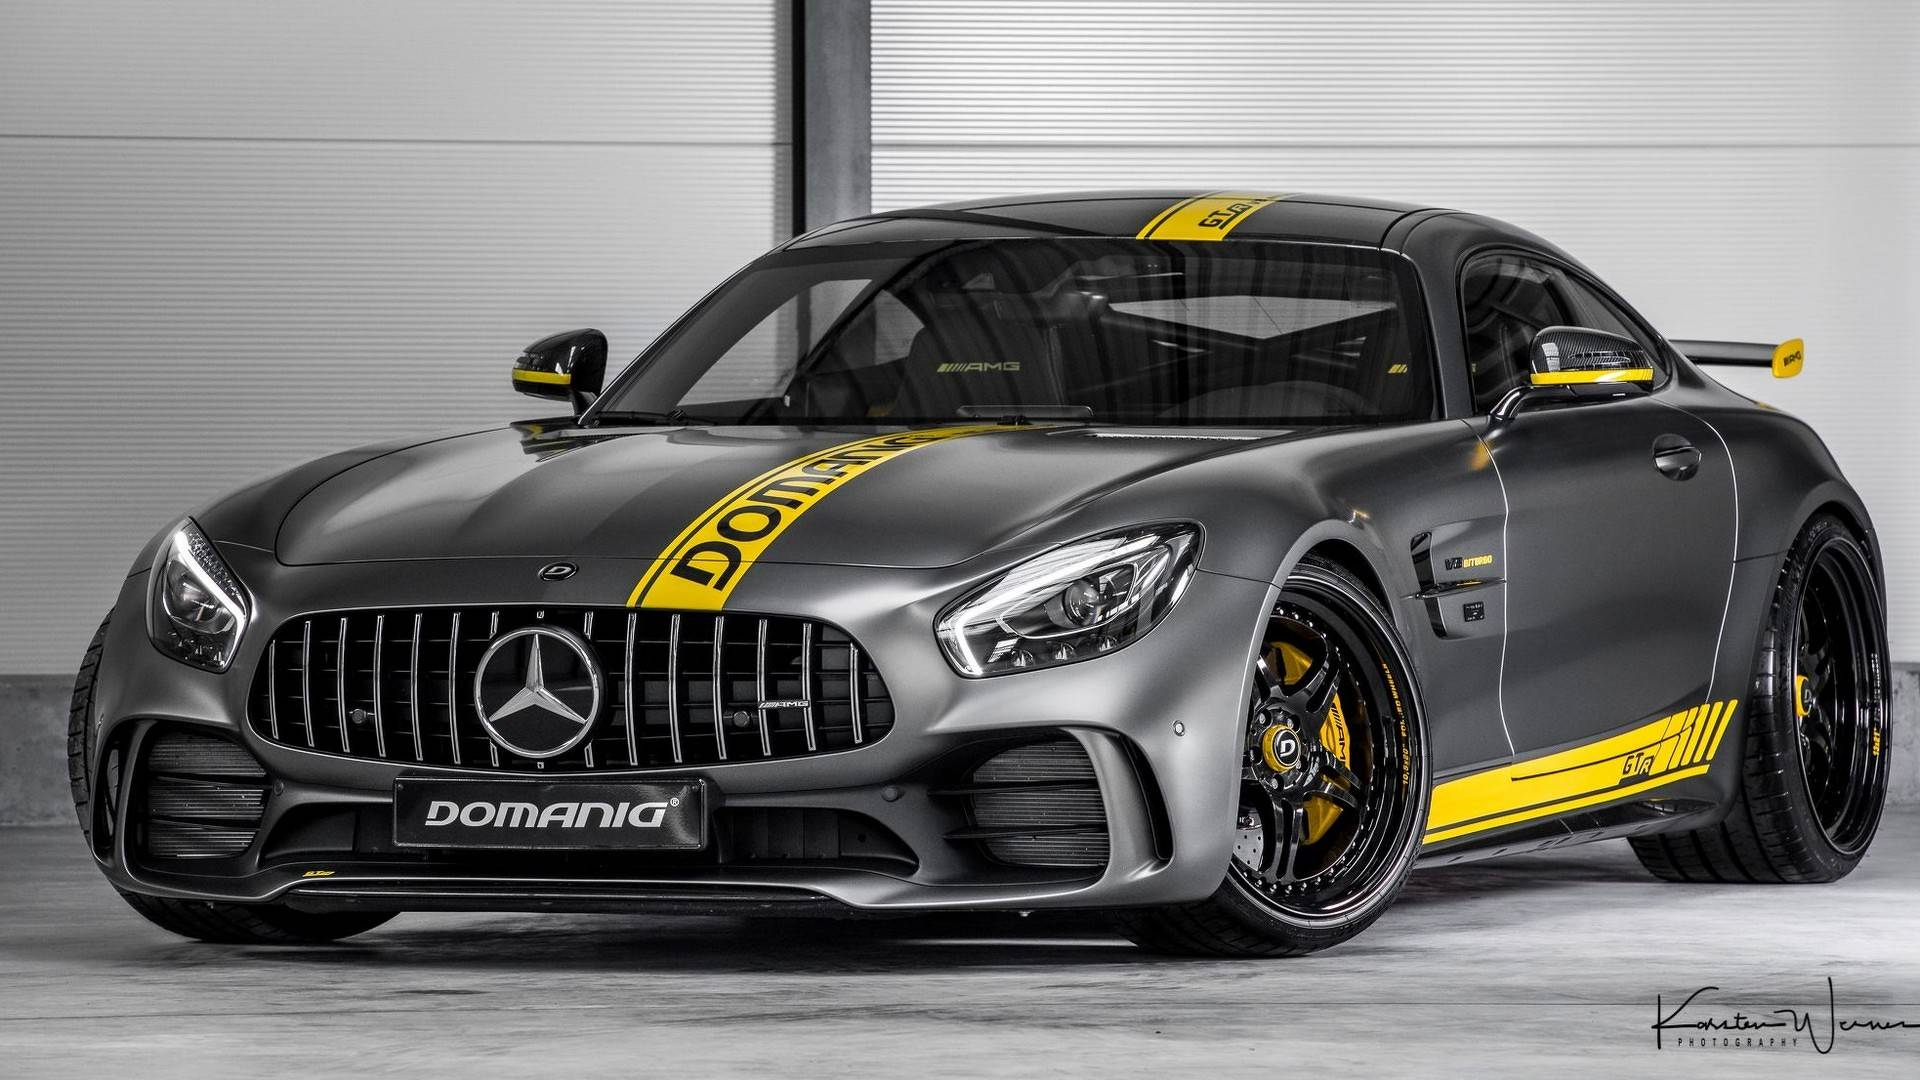 mercedes amg gt r 2 a mercedes benz fan blog. Black Bedroom Furniture Sets. Home Design Ideas